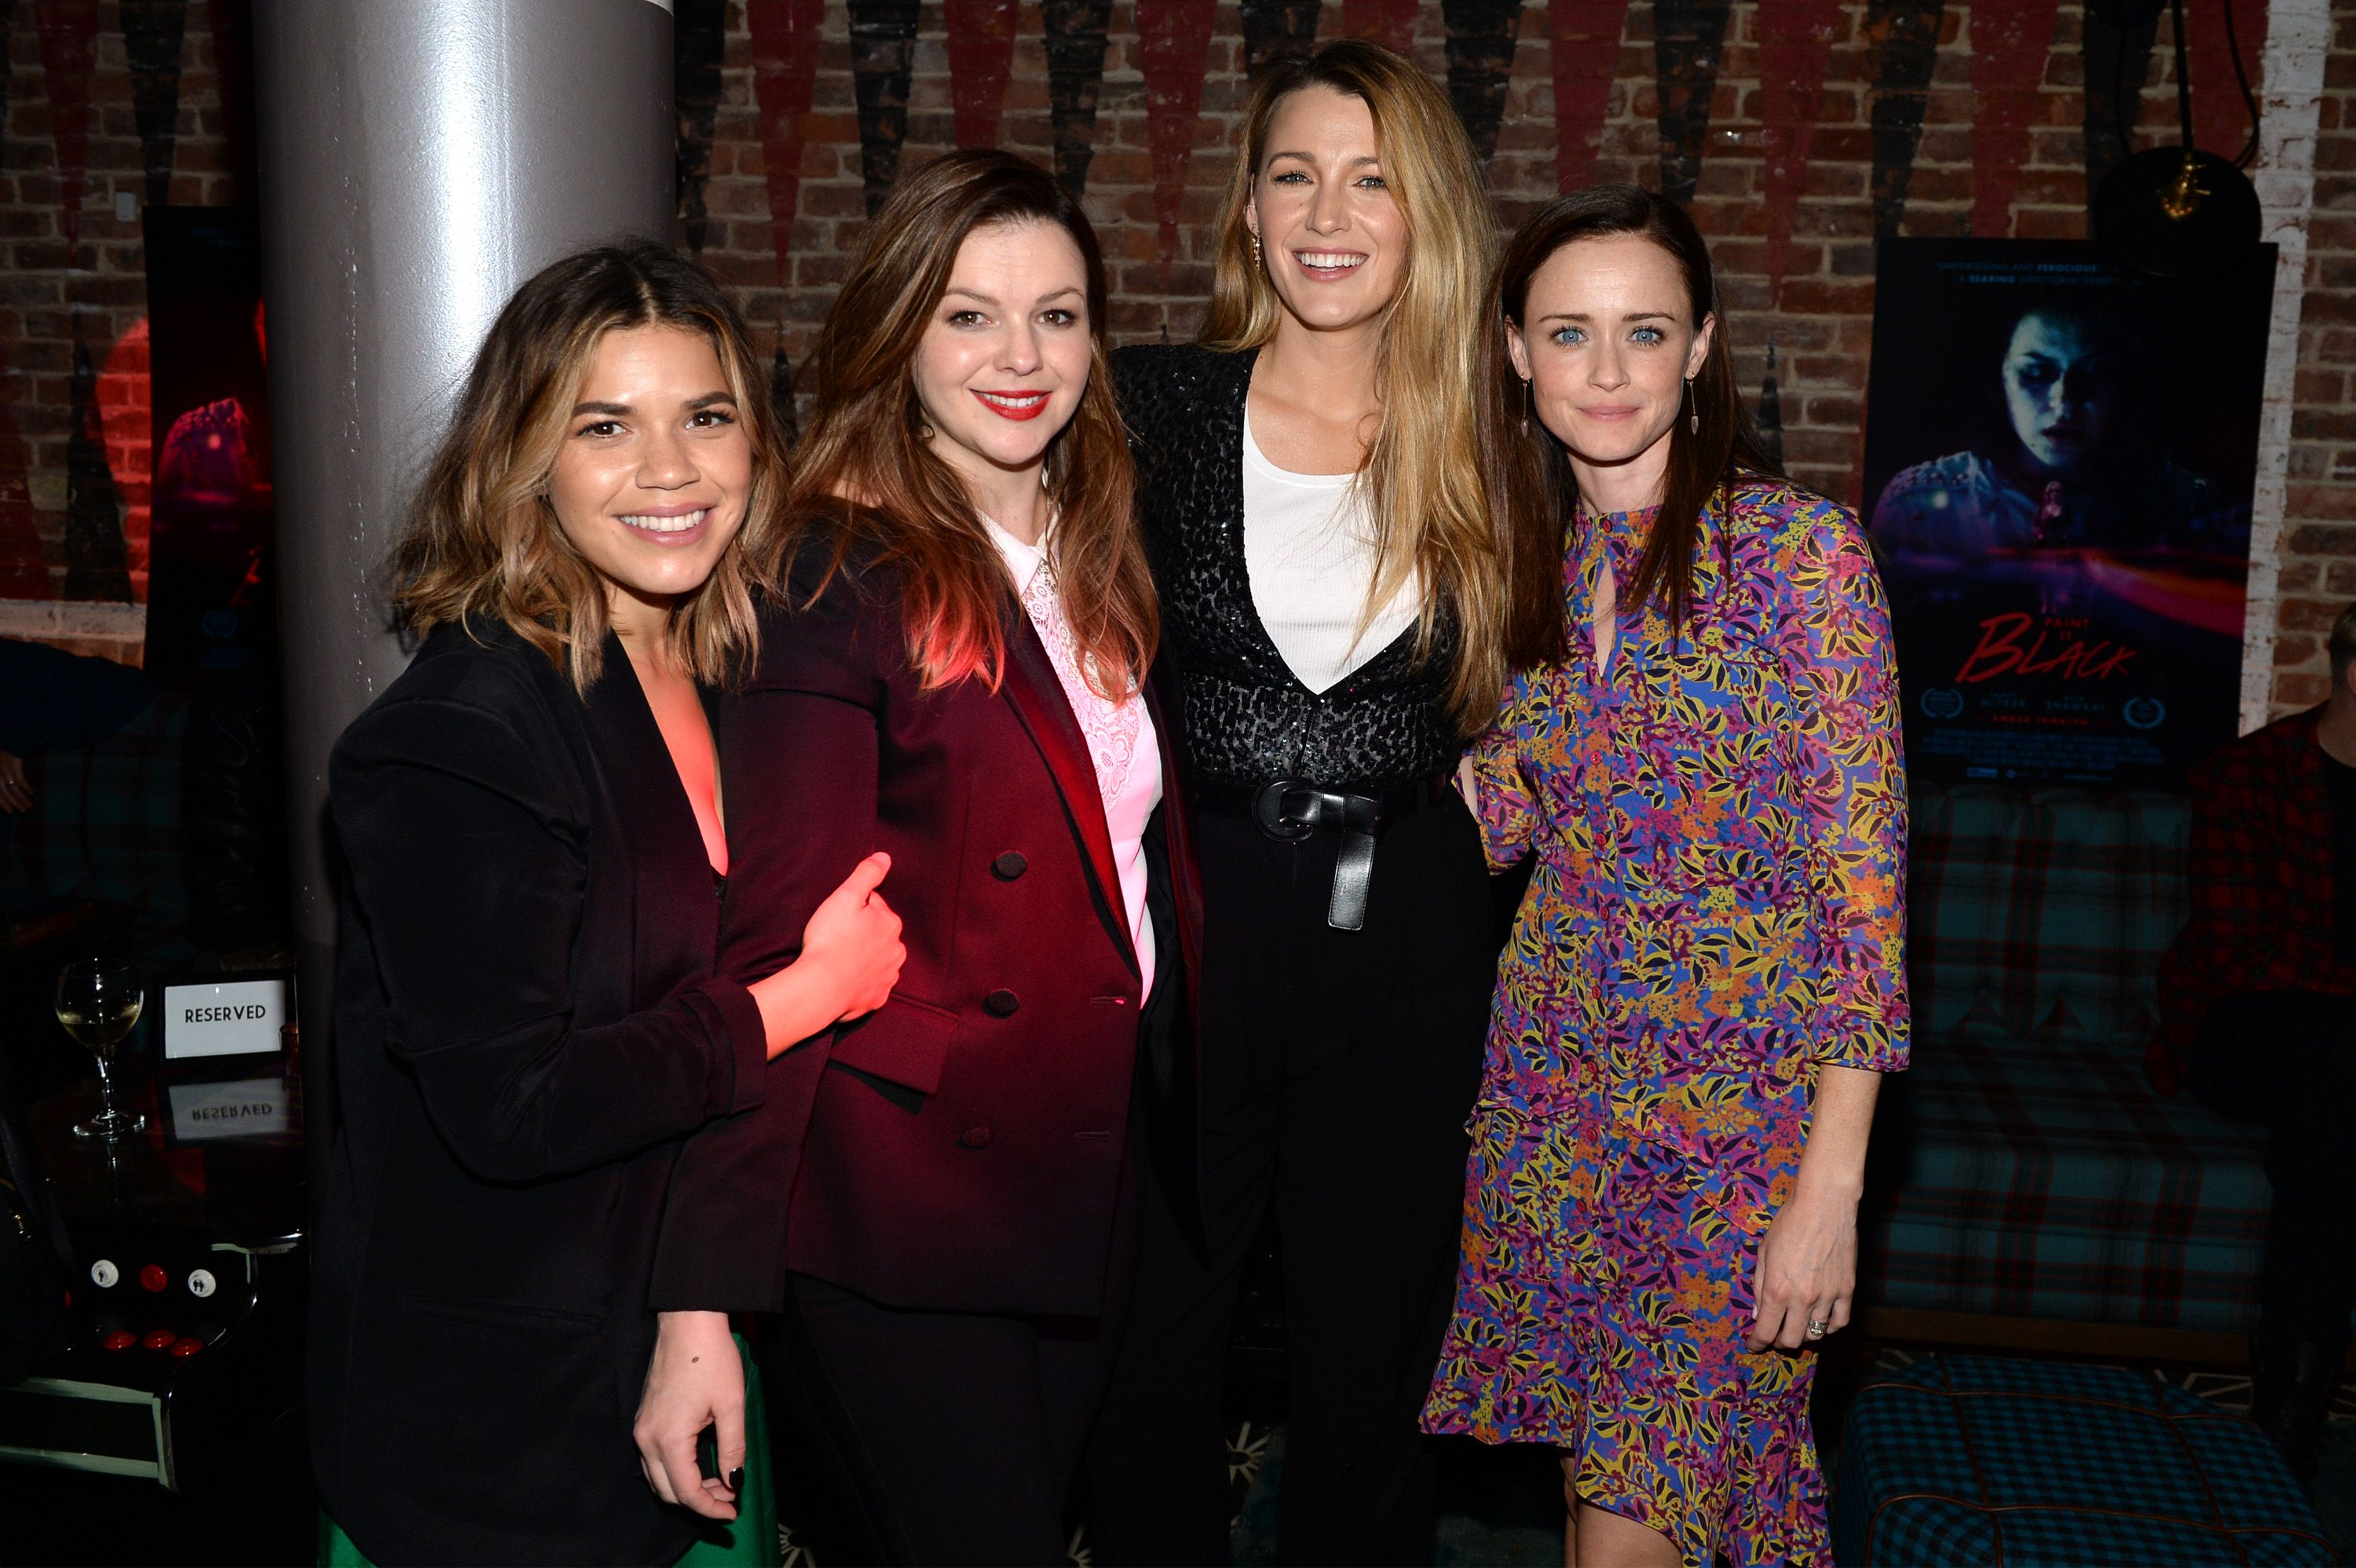 Blake Lively, Alexis Bledel, America Ferrera & Amber Tamblyn This girl gang starred together in The Sisterhood of the Traveling Pants, and their sisterhood extended off screen, too. They've been in each other's weddings and celebrated each other's pregnancies.